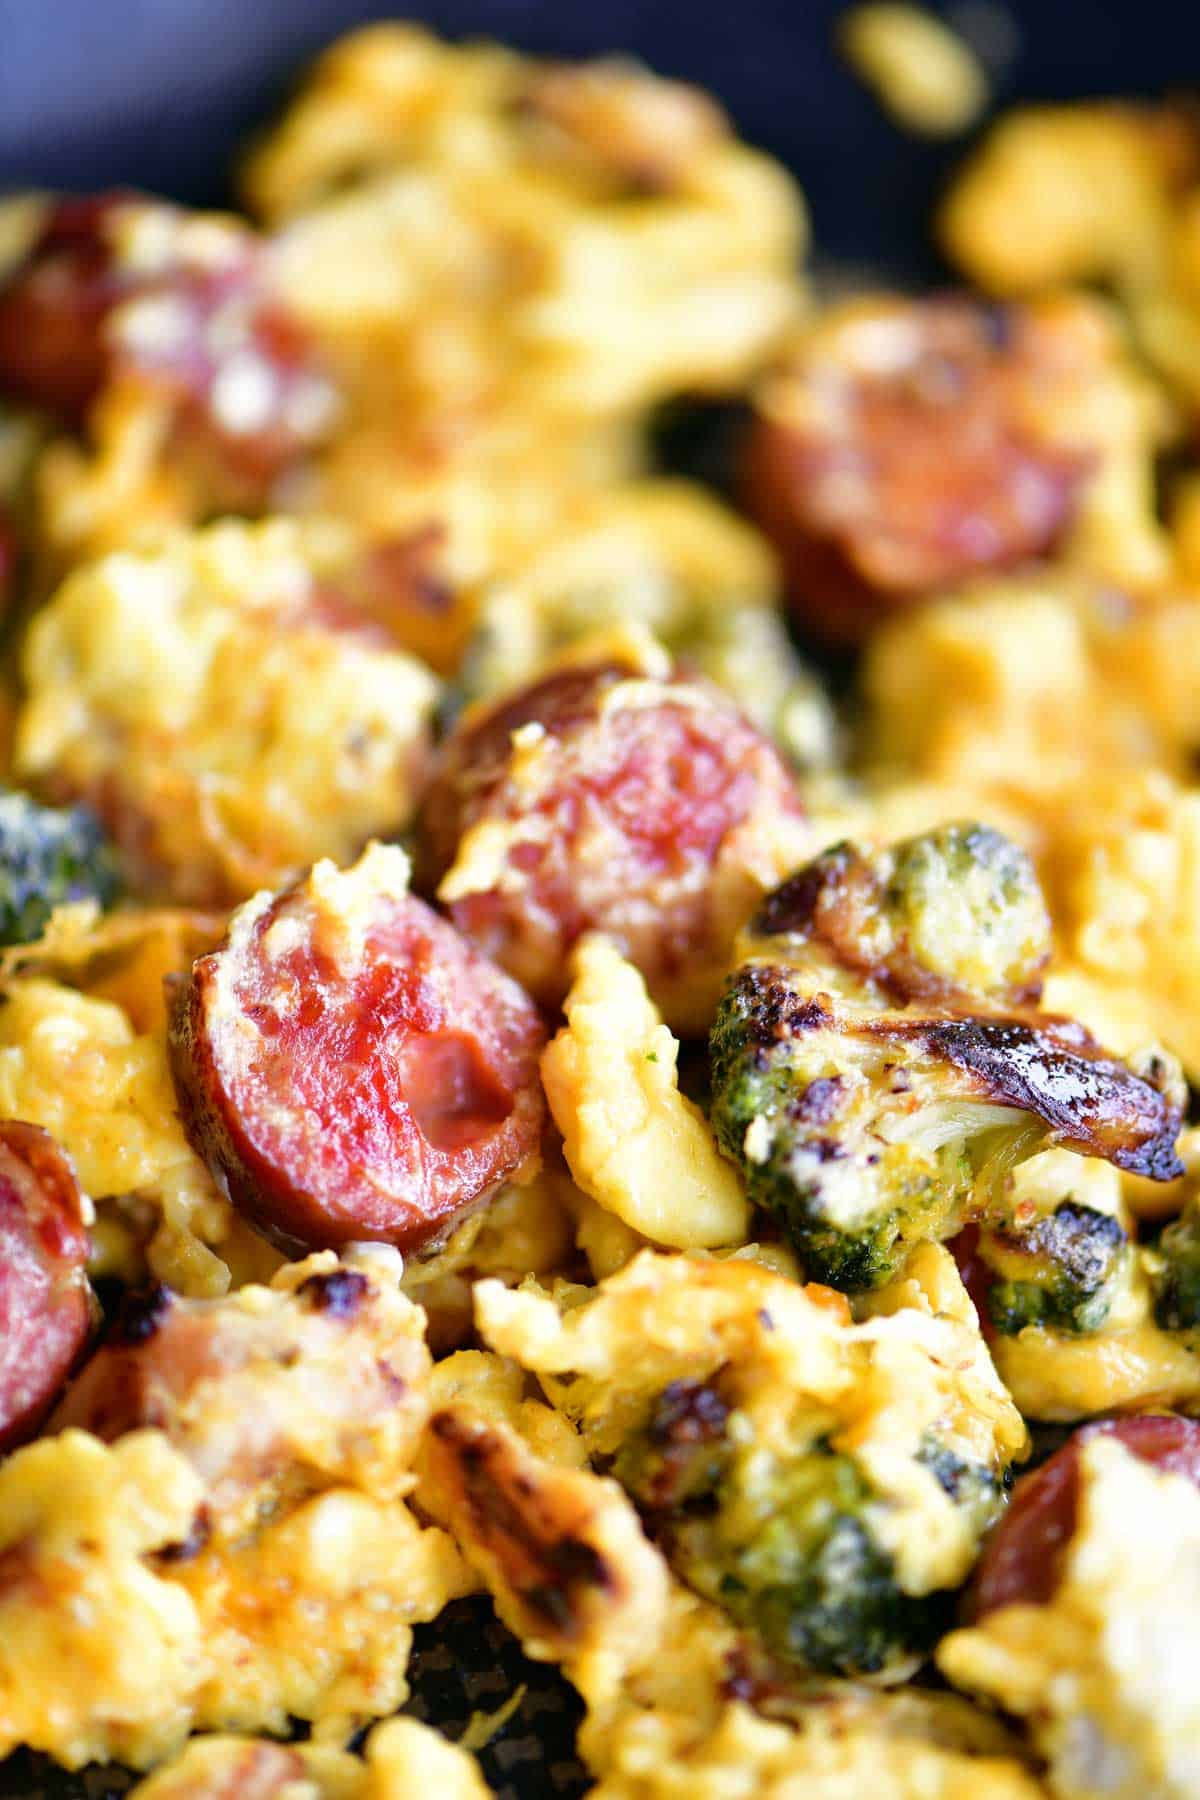 Breakfast Skillet Recipe Sausage, Broccoli, and Scrambled Eggs